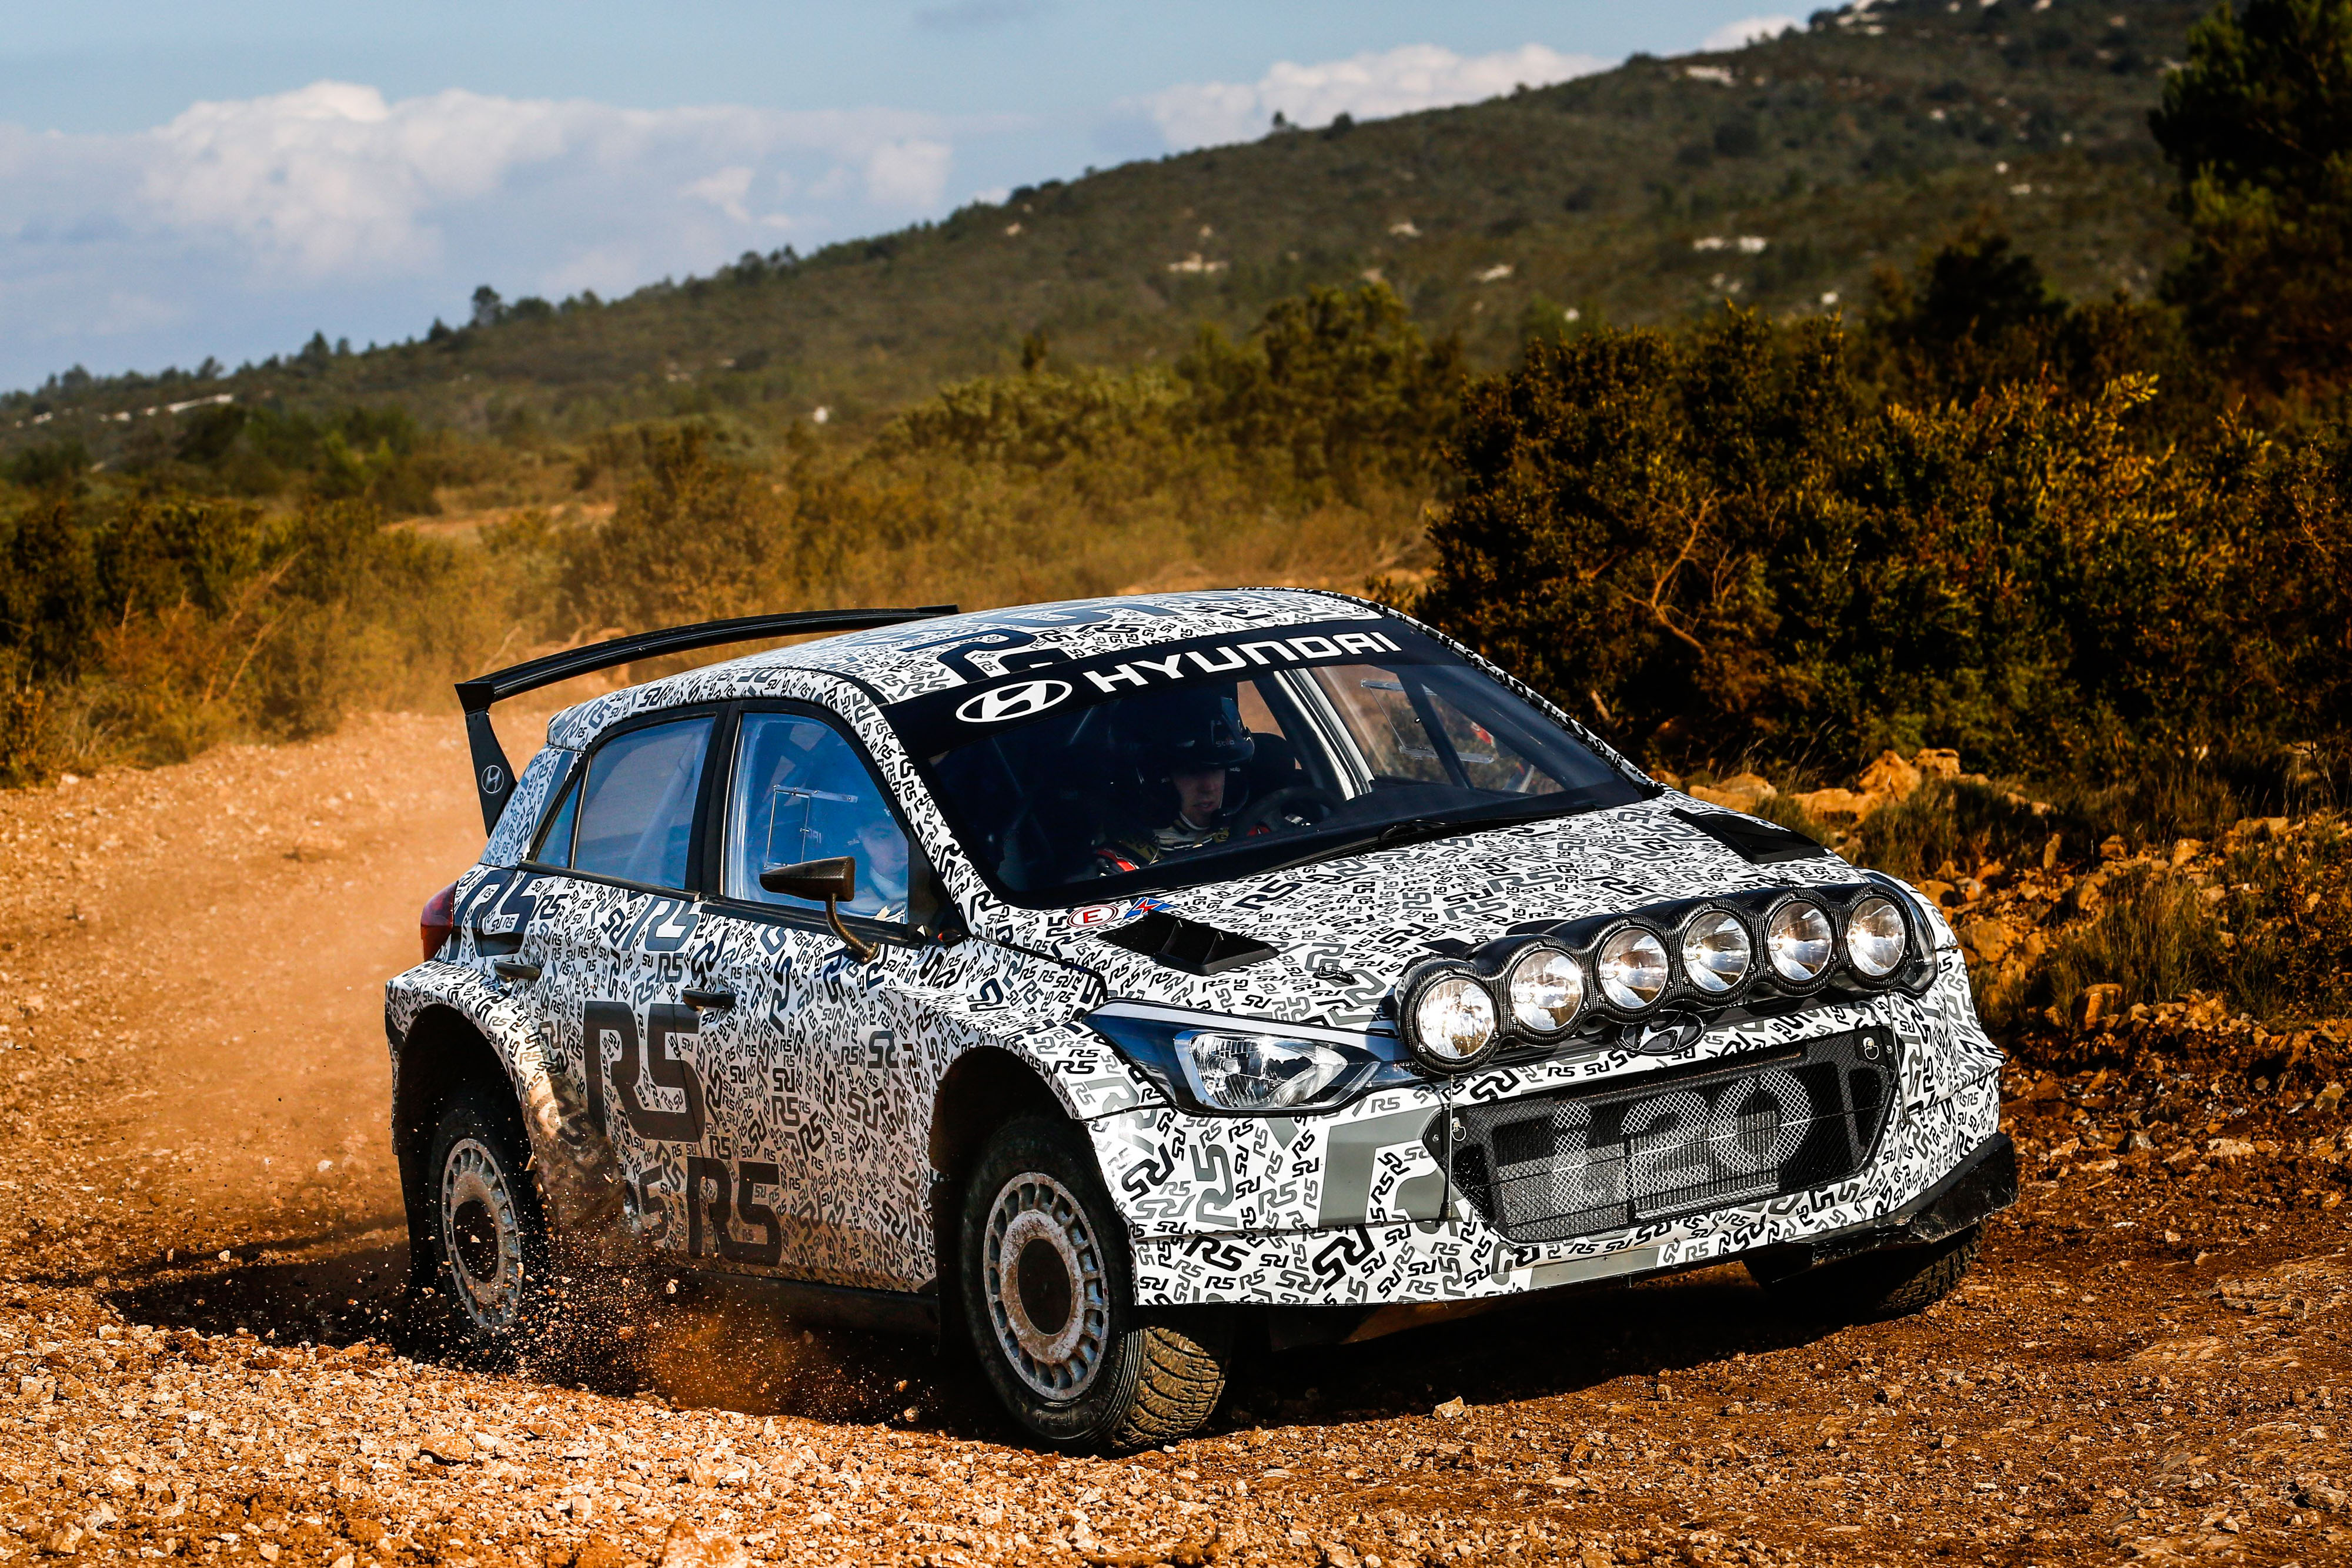 Hyundai Motorsport Customer Project picks up pace as R5 testing begins